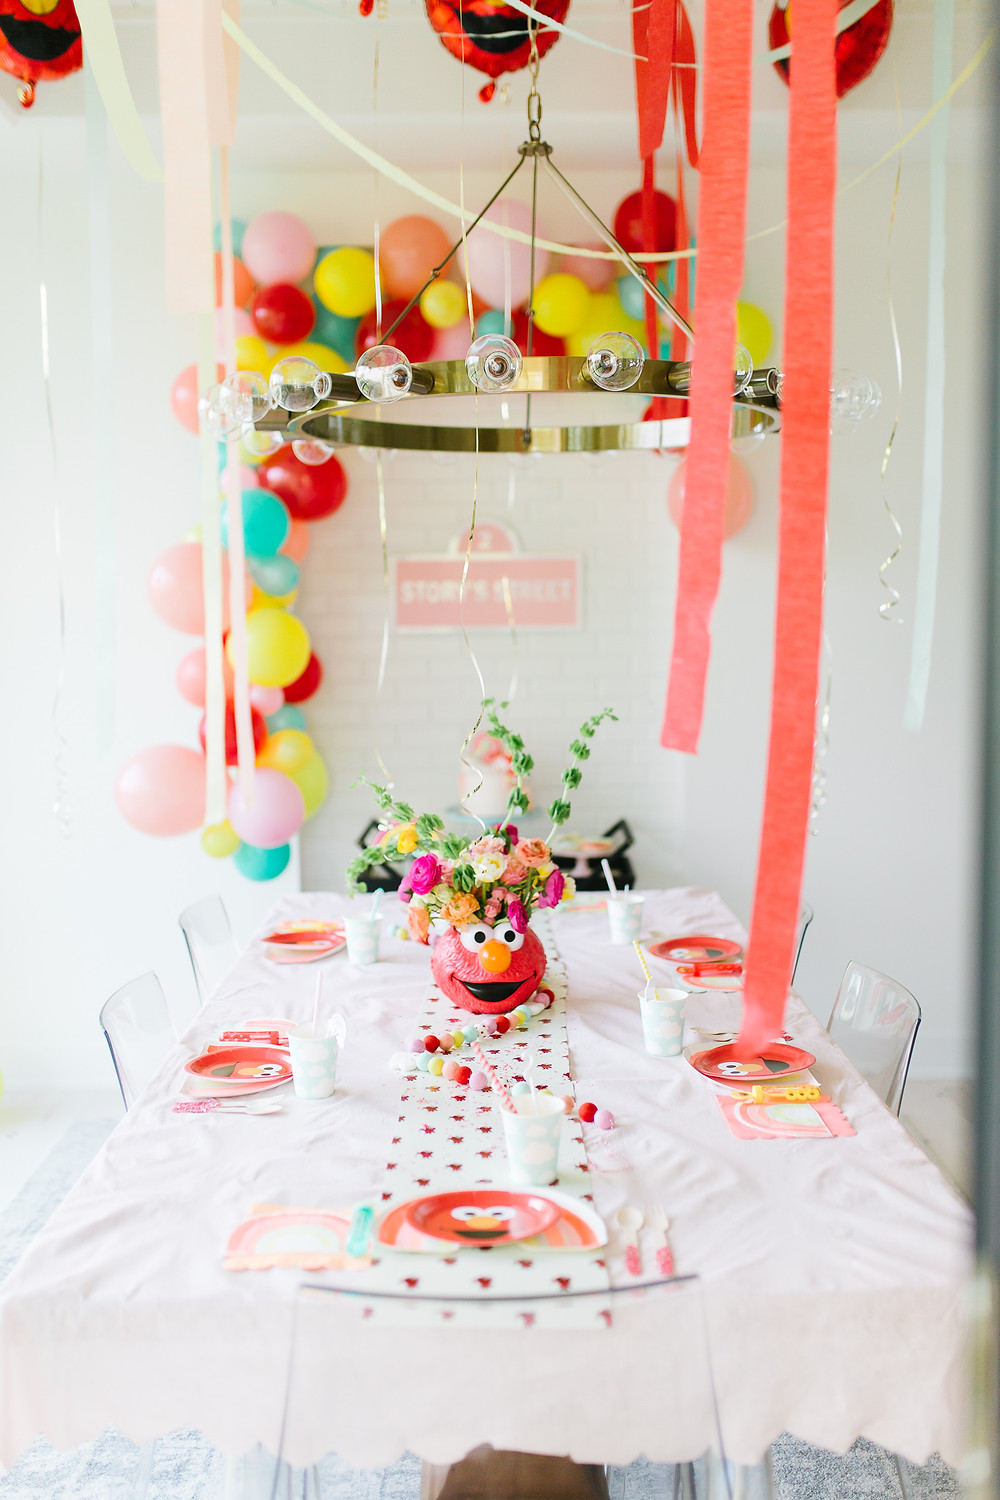 A Sesame Street Elmo birthday party with colourful balloons, streamers over a table with Elmo plates, cups, and napkins with a white table cloth and floral Elmo centrepiece and pink signage.